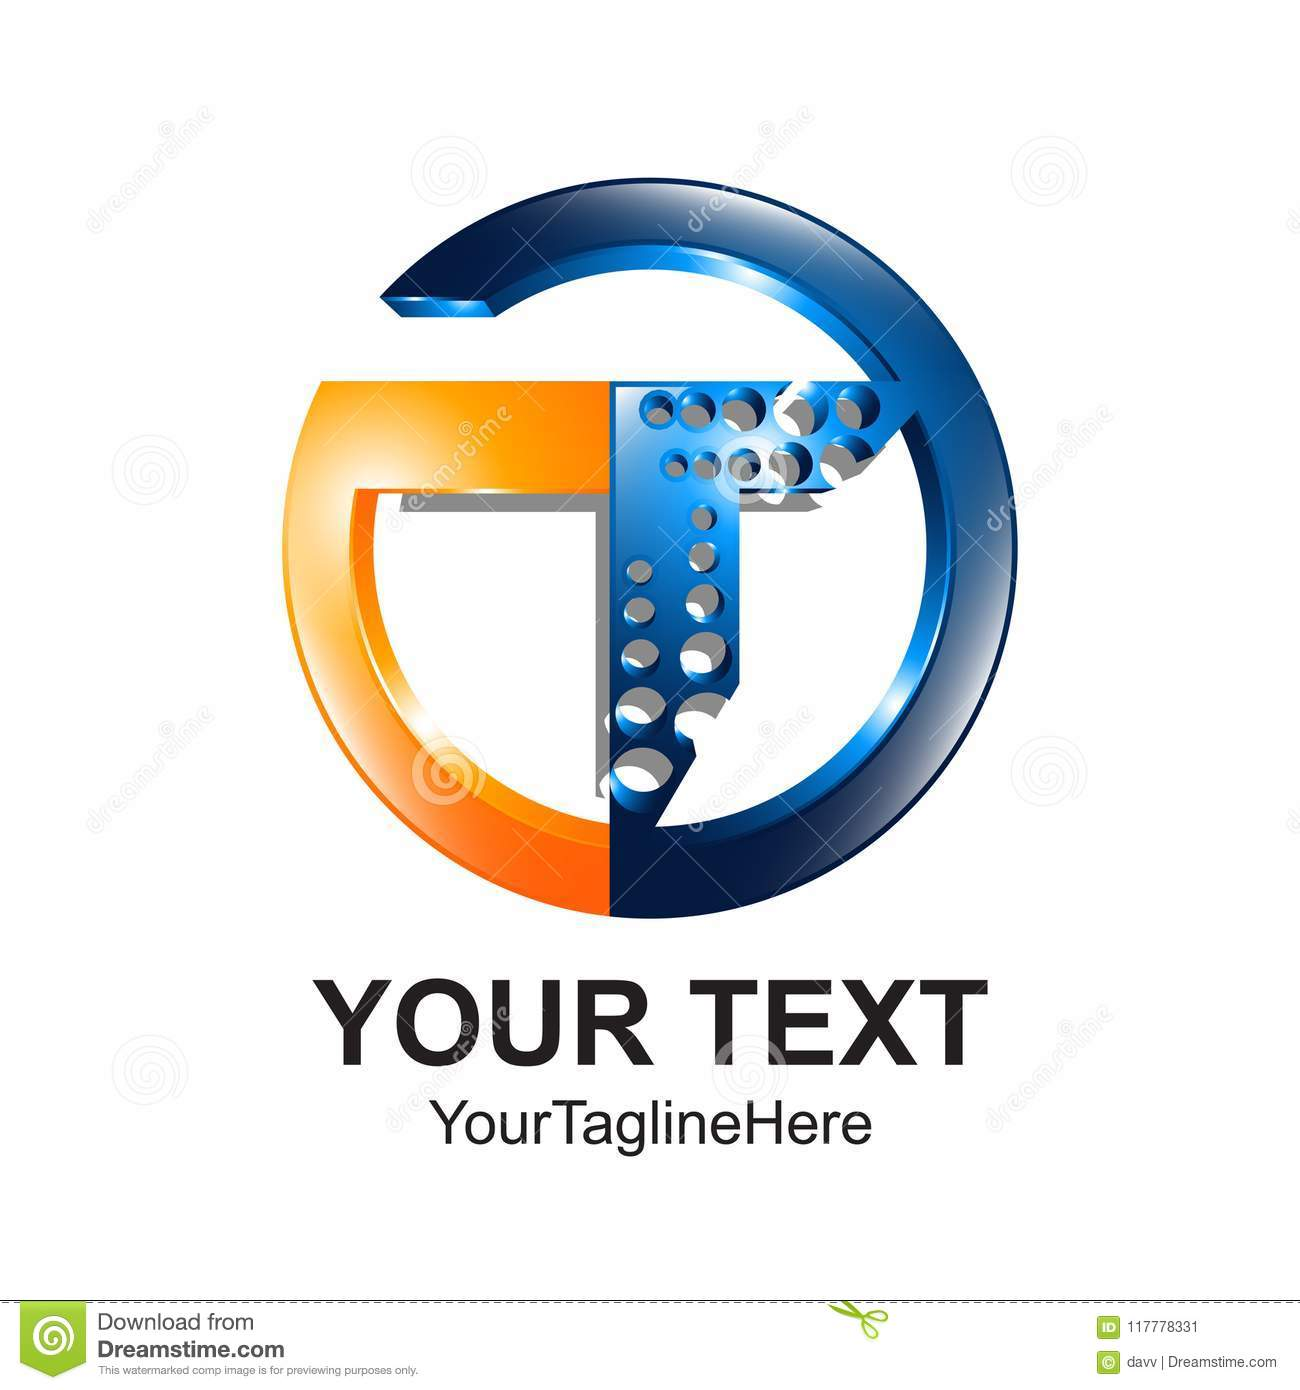 b6ee641fe Initial letter T logo template colored orange blue circle design. Download  preview